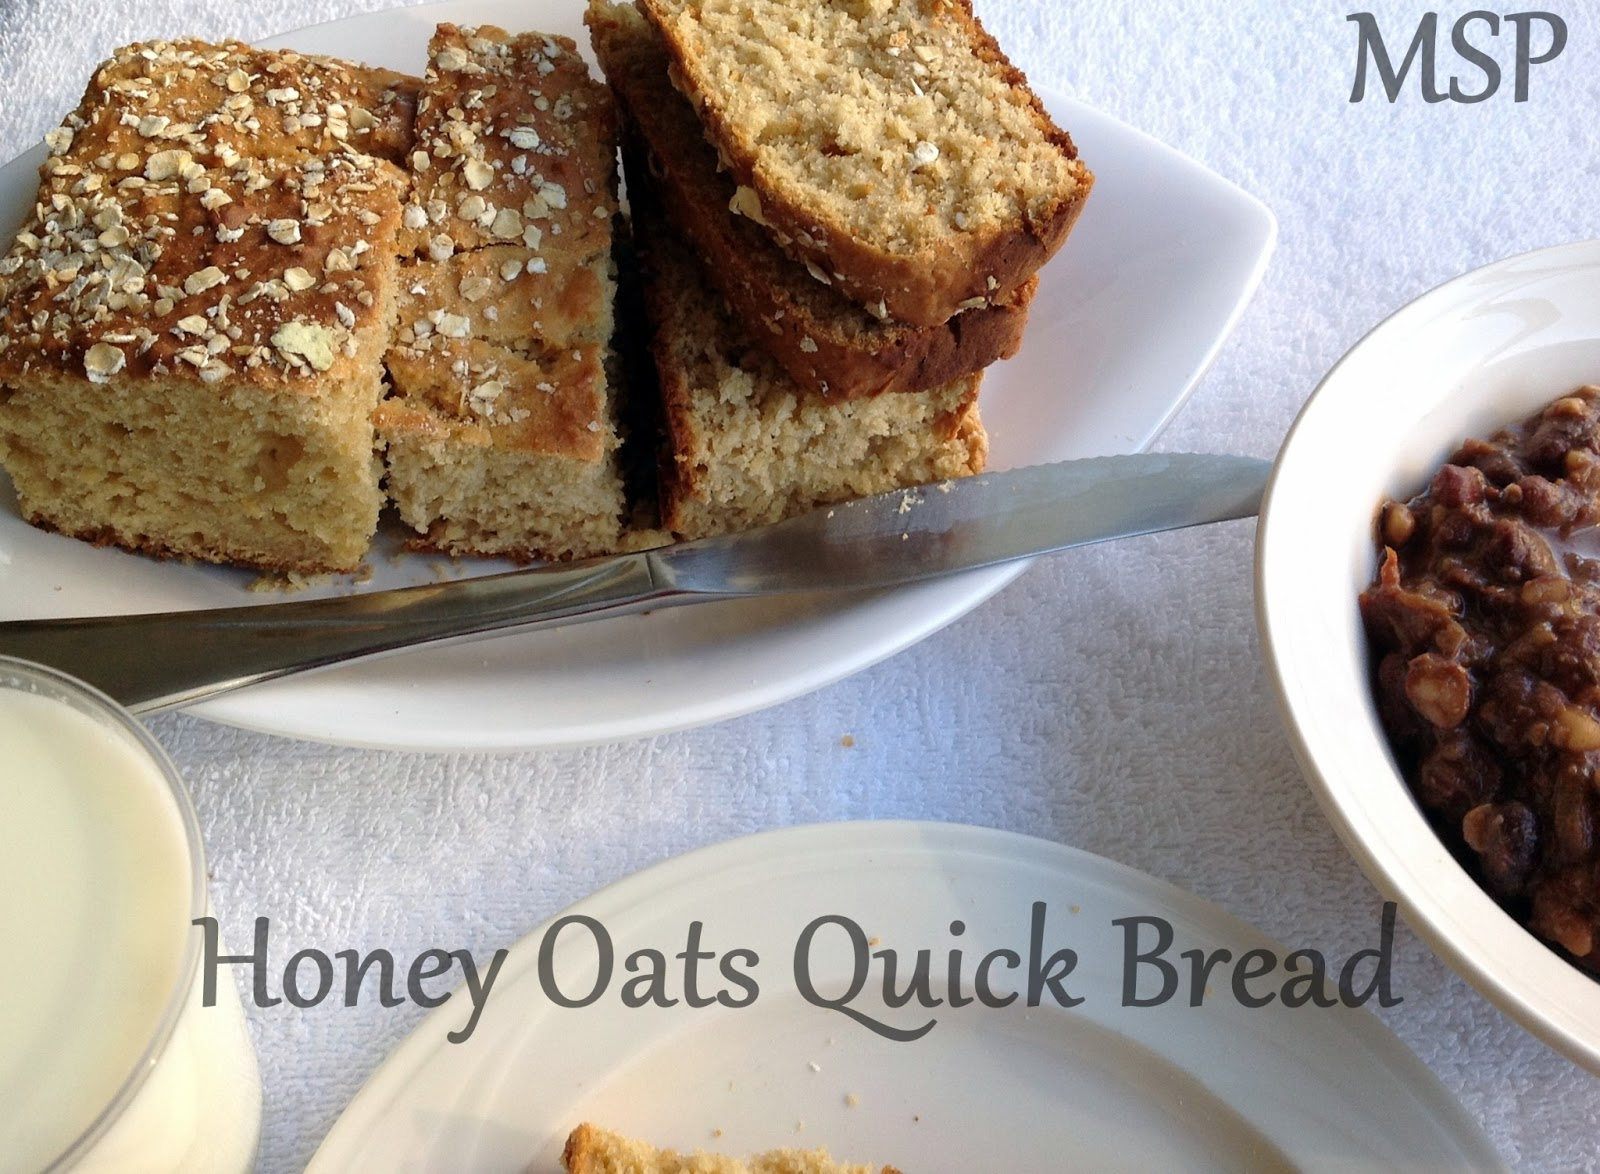 THE MAGIC SAUCEPAN: Honey Oats Quick Bread